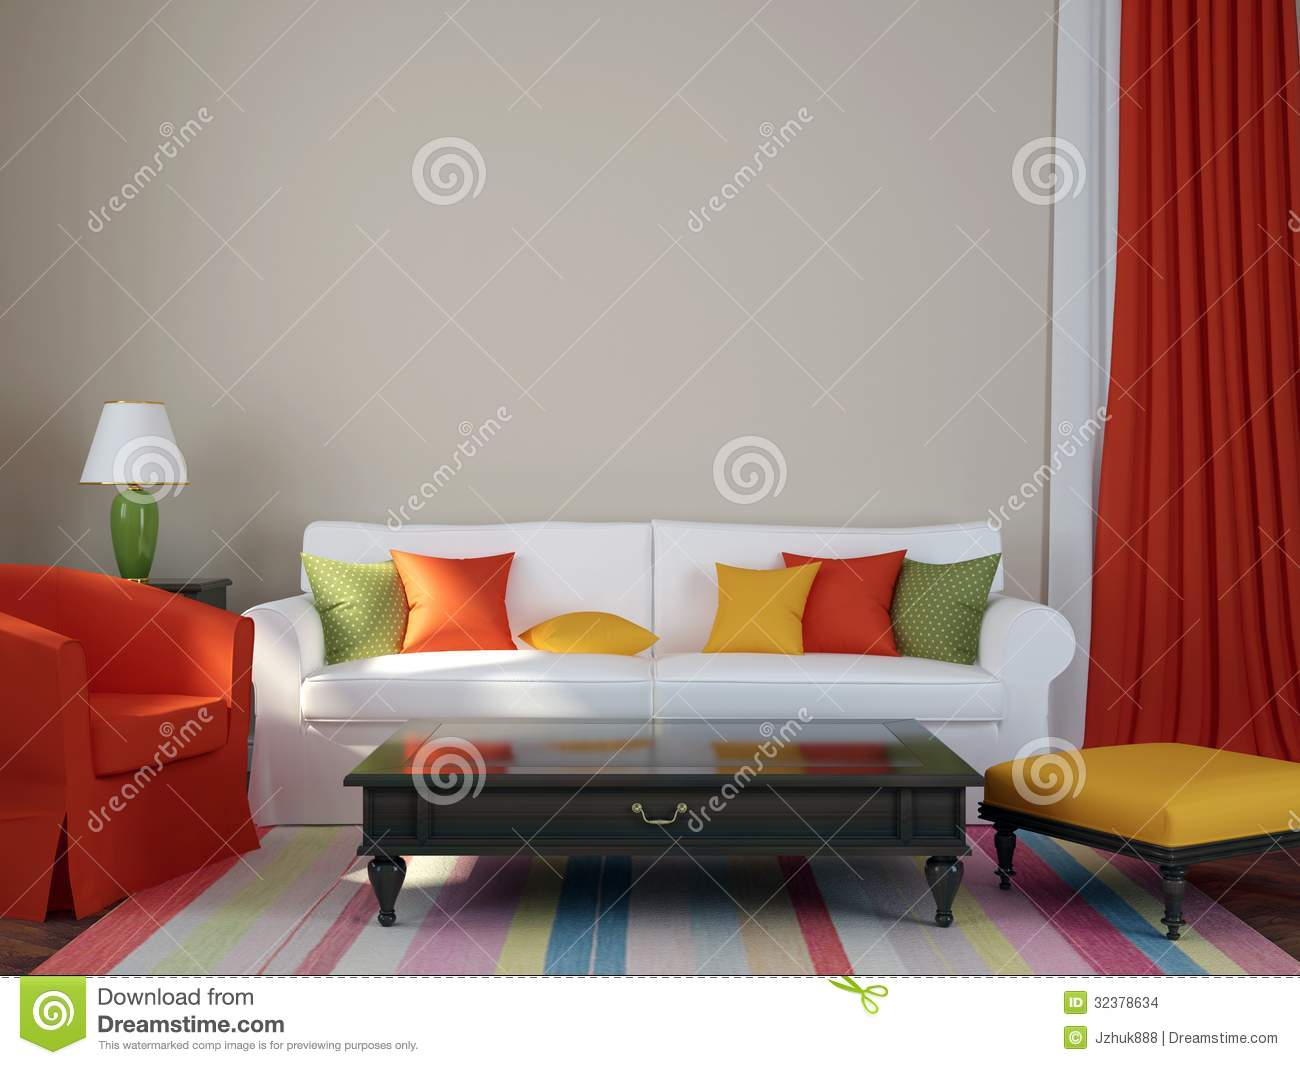 three cushion sofa chesterfield uk made colorful interior stock illustration. image of domestic ...